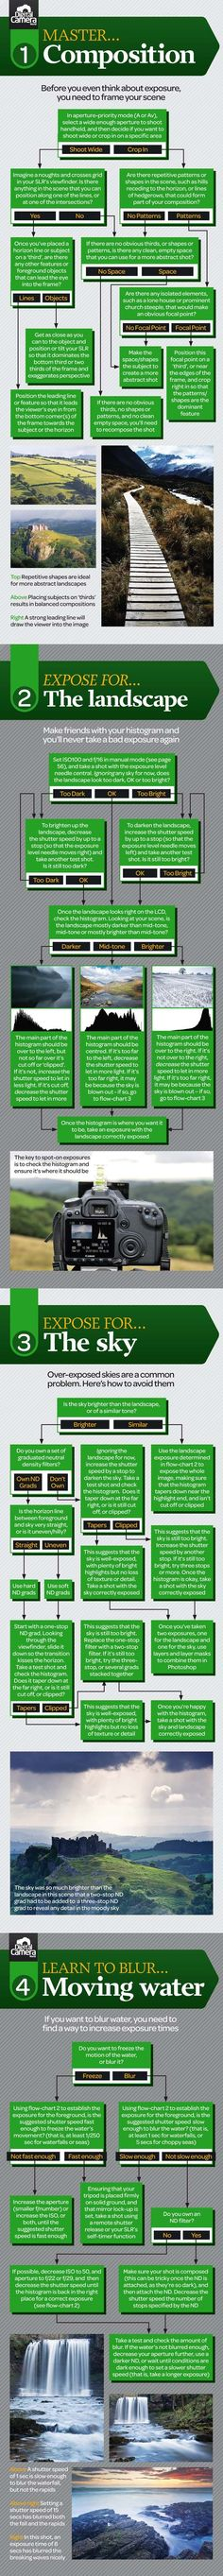 The landscape's greatest challenges: a free photography cheat sheet | Digital Camera World